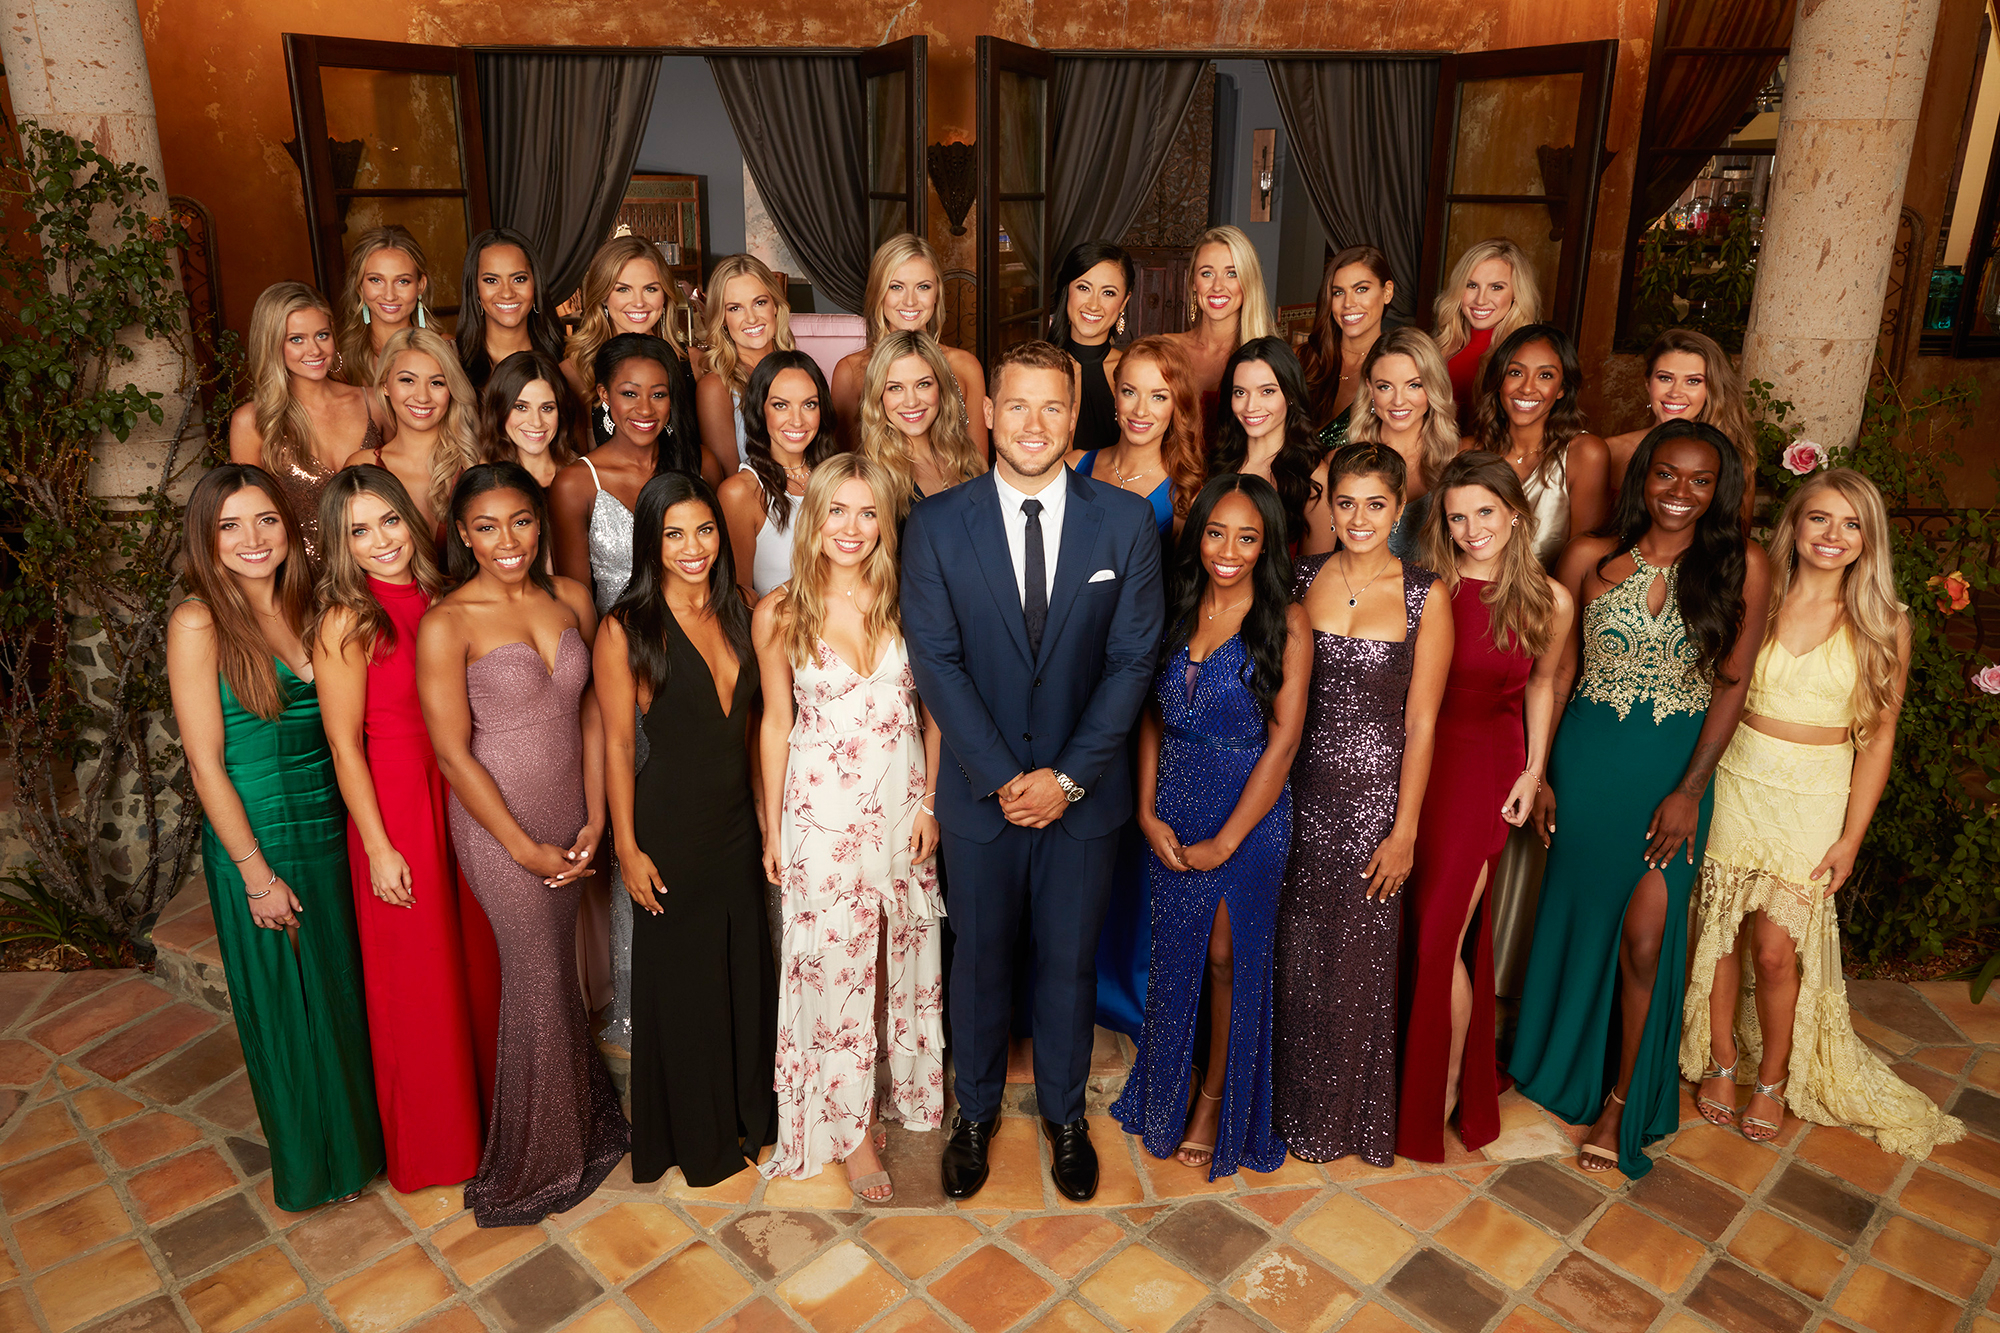 The Prinatable 'bachelor' Bracket For Colton Underwood's Season pertaining to Bachelor Bracket Printable